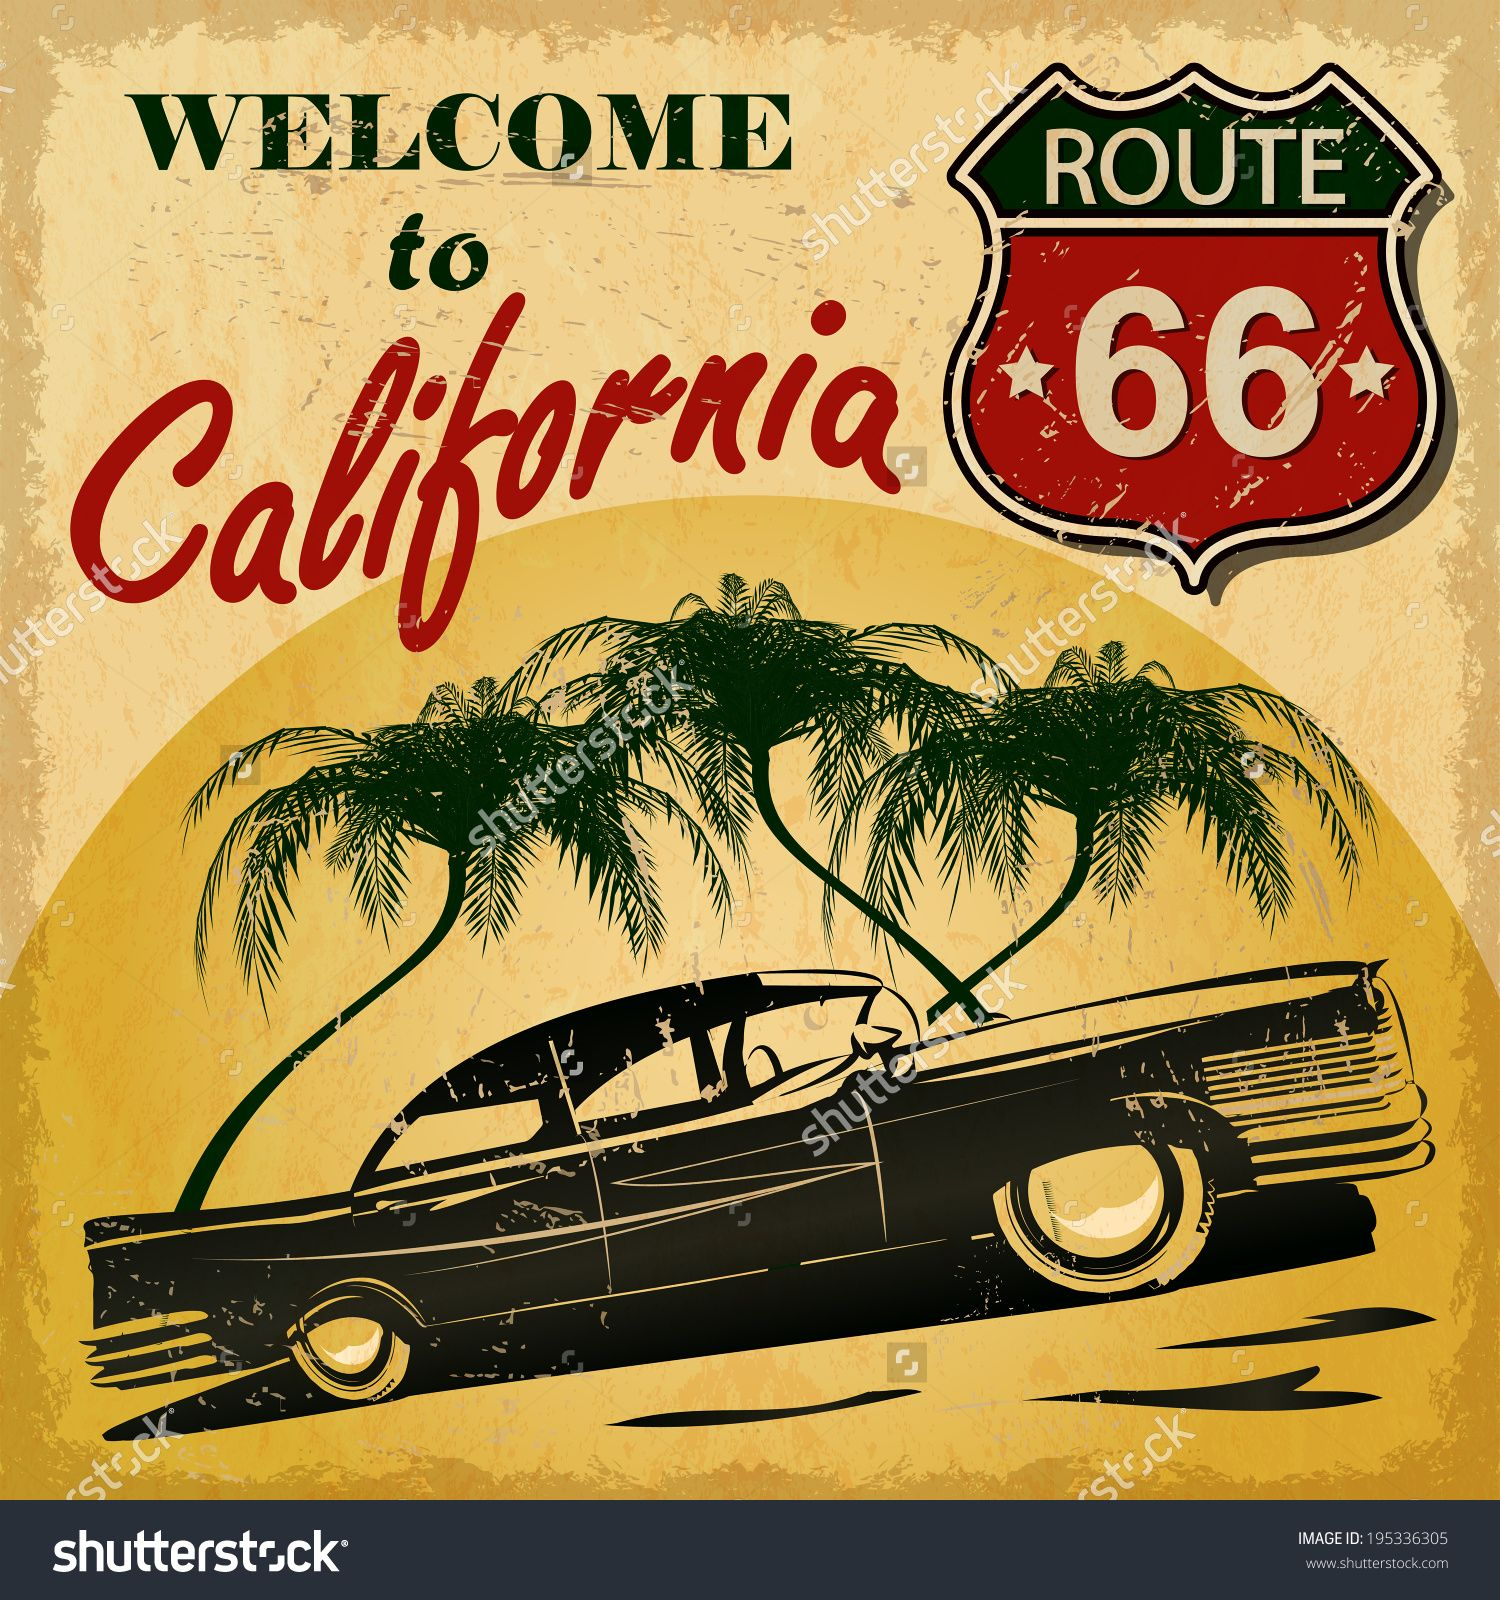 Welcome To California Retro Poster